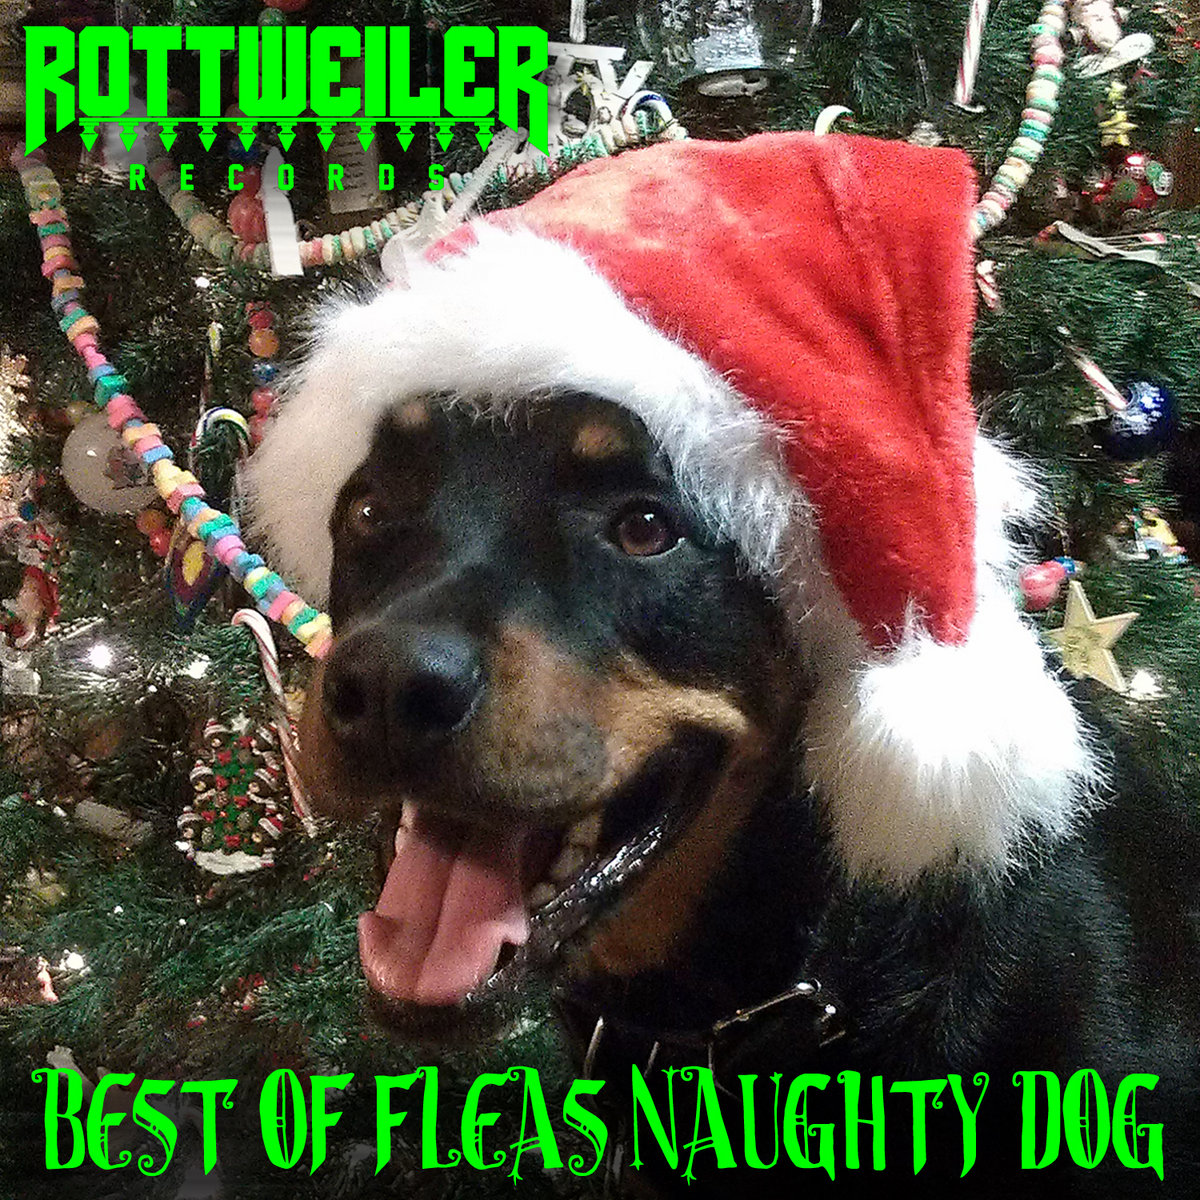 BEST OF FLEAS NAUGHTY DOG + | Rottweiler Records